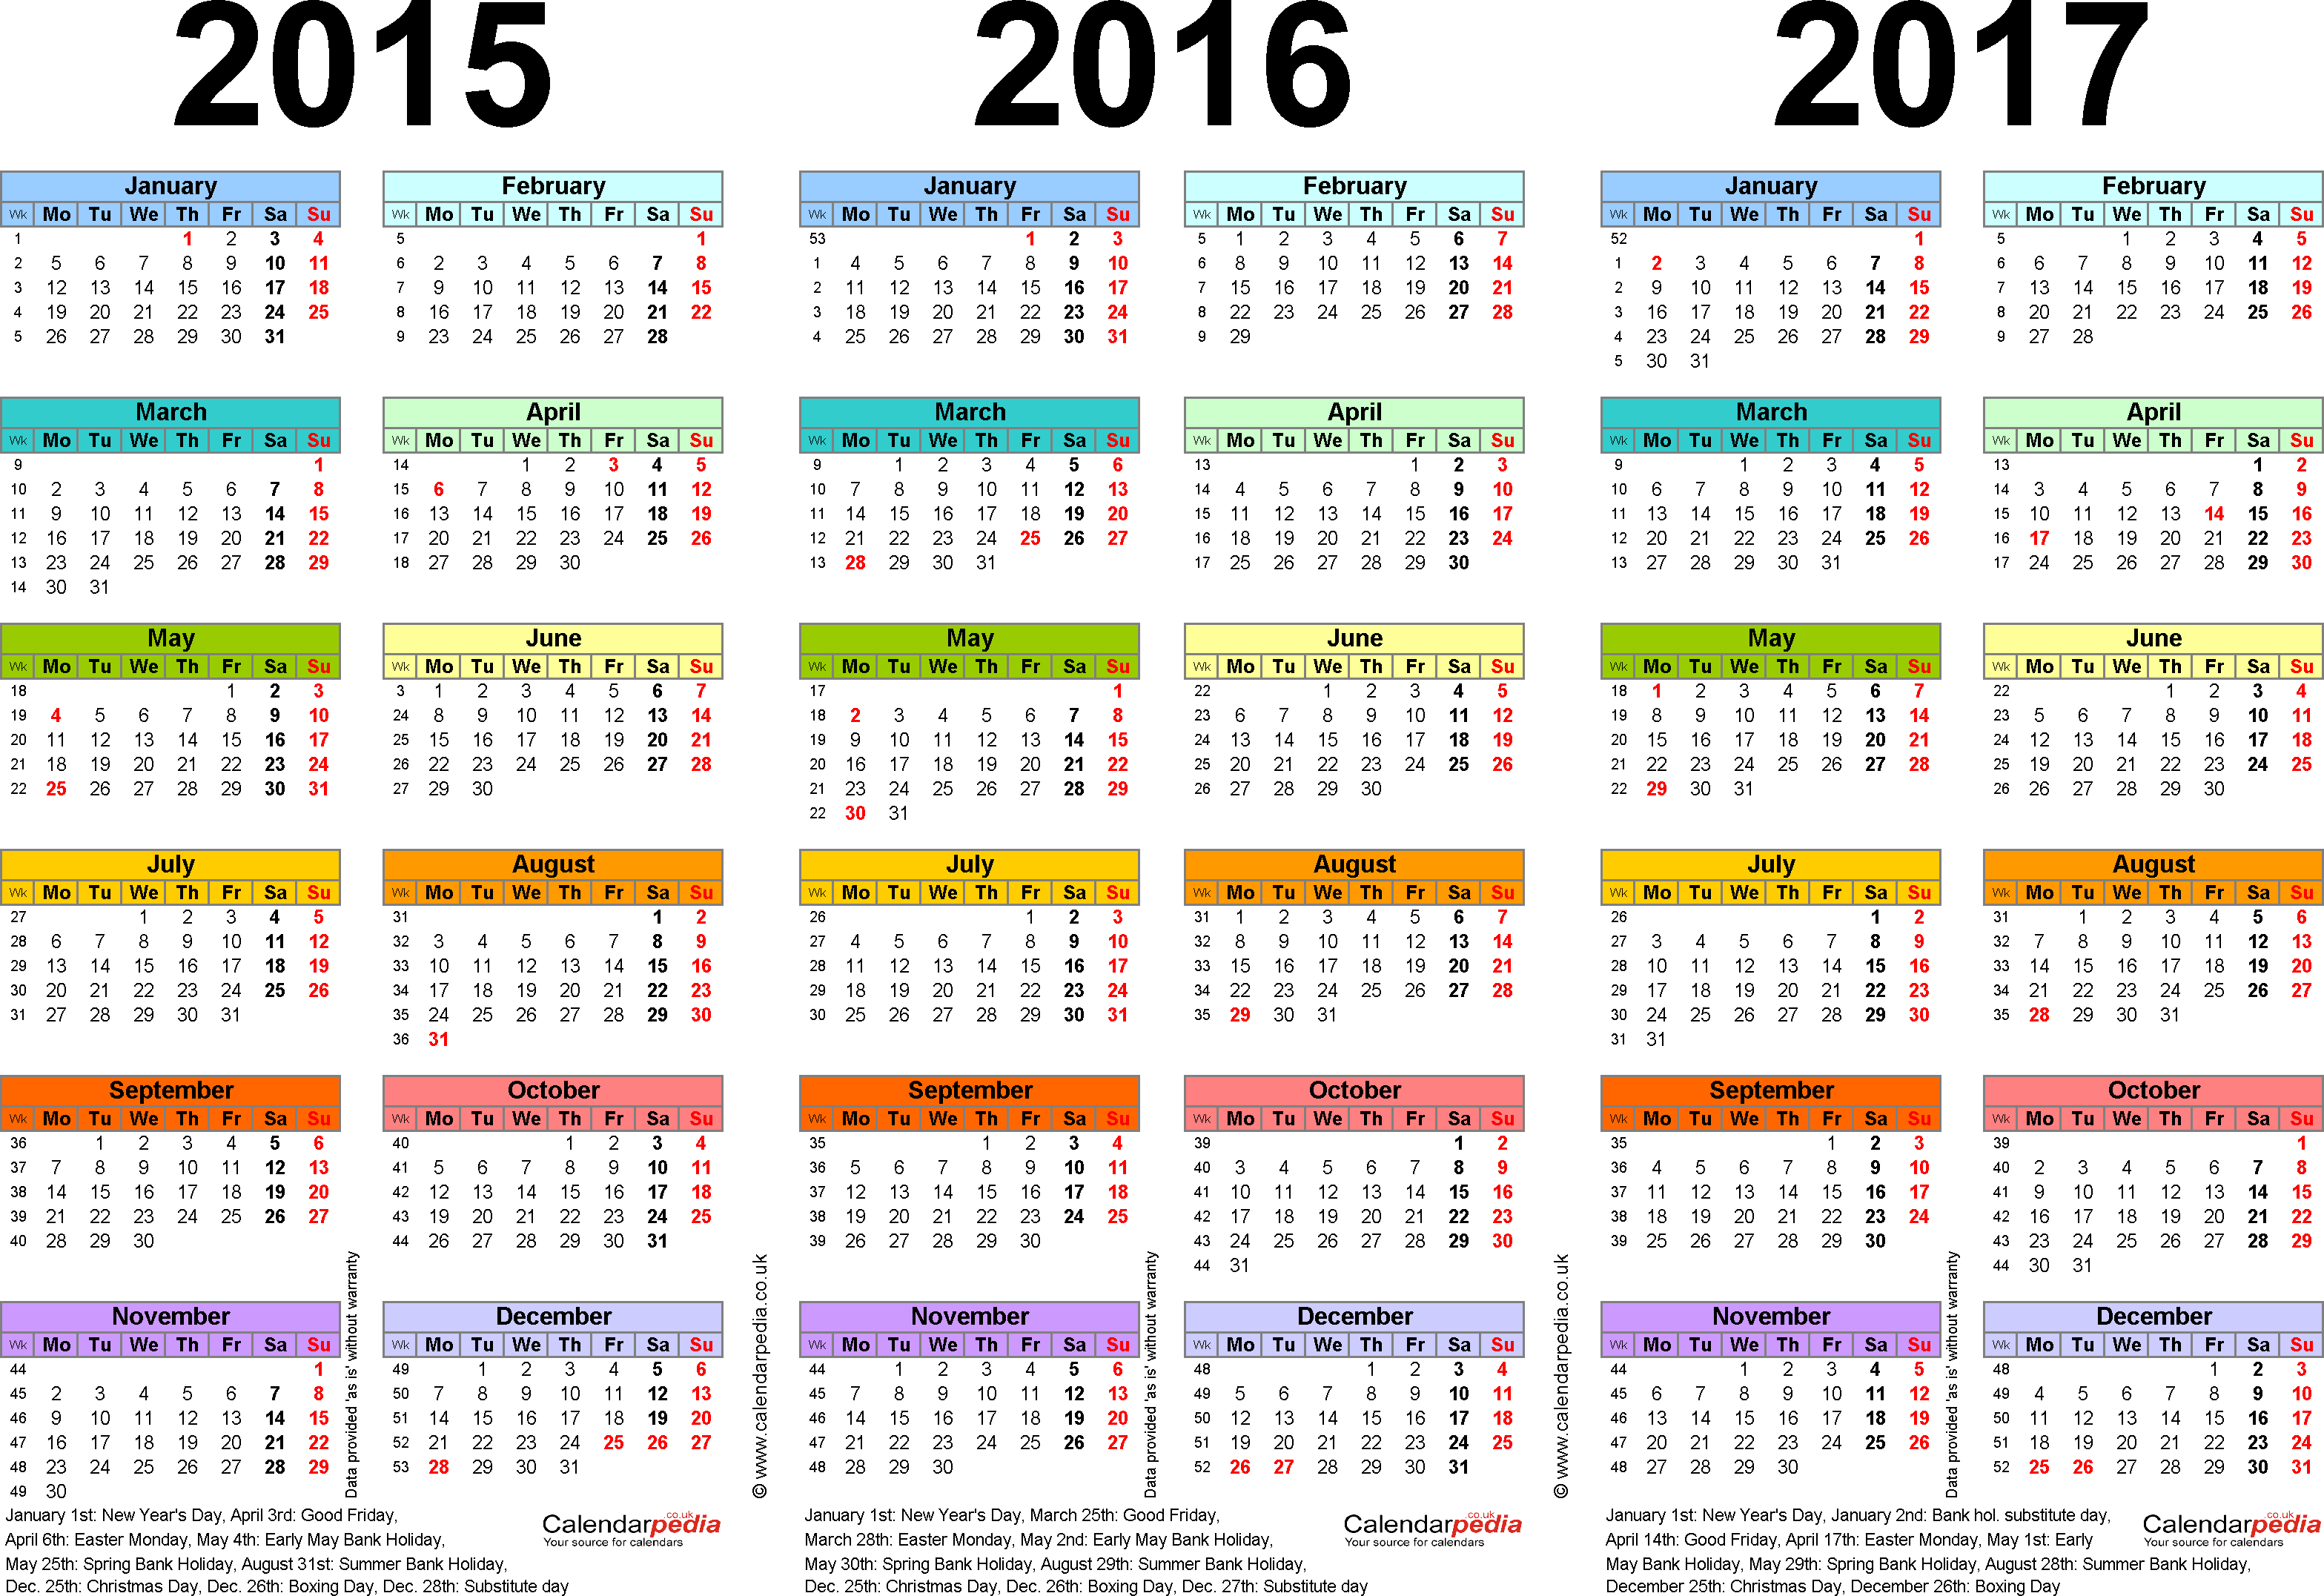 Template 1: PDF template for three year calendar 2015-2017 in colour (landscape orientation, 1 page, A4)